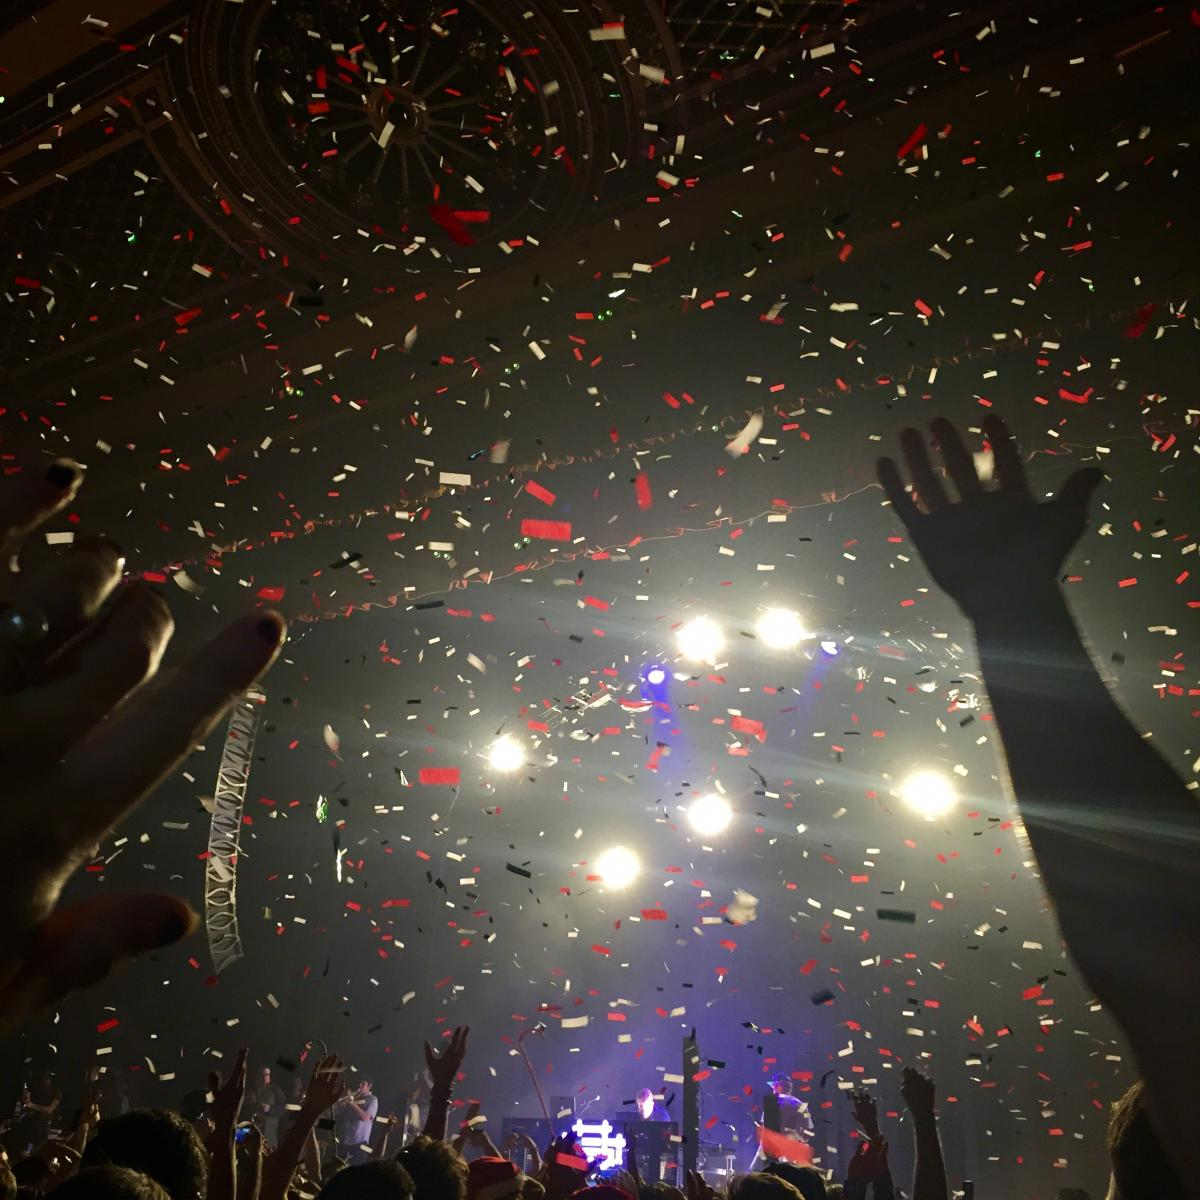 Concert photo with crowd and hands in the air and bright stage lights.